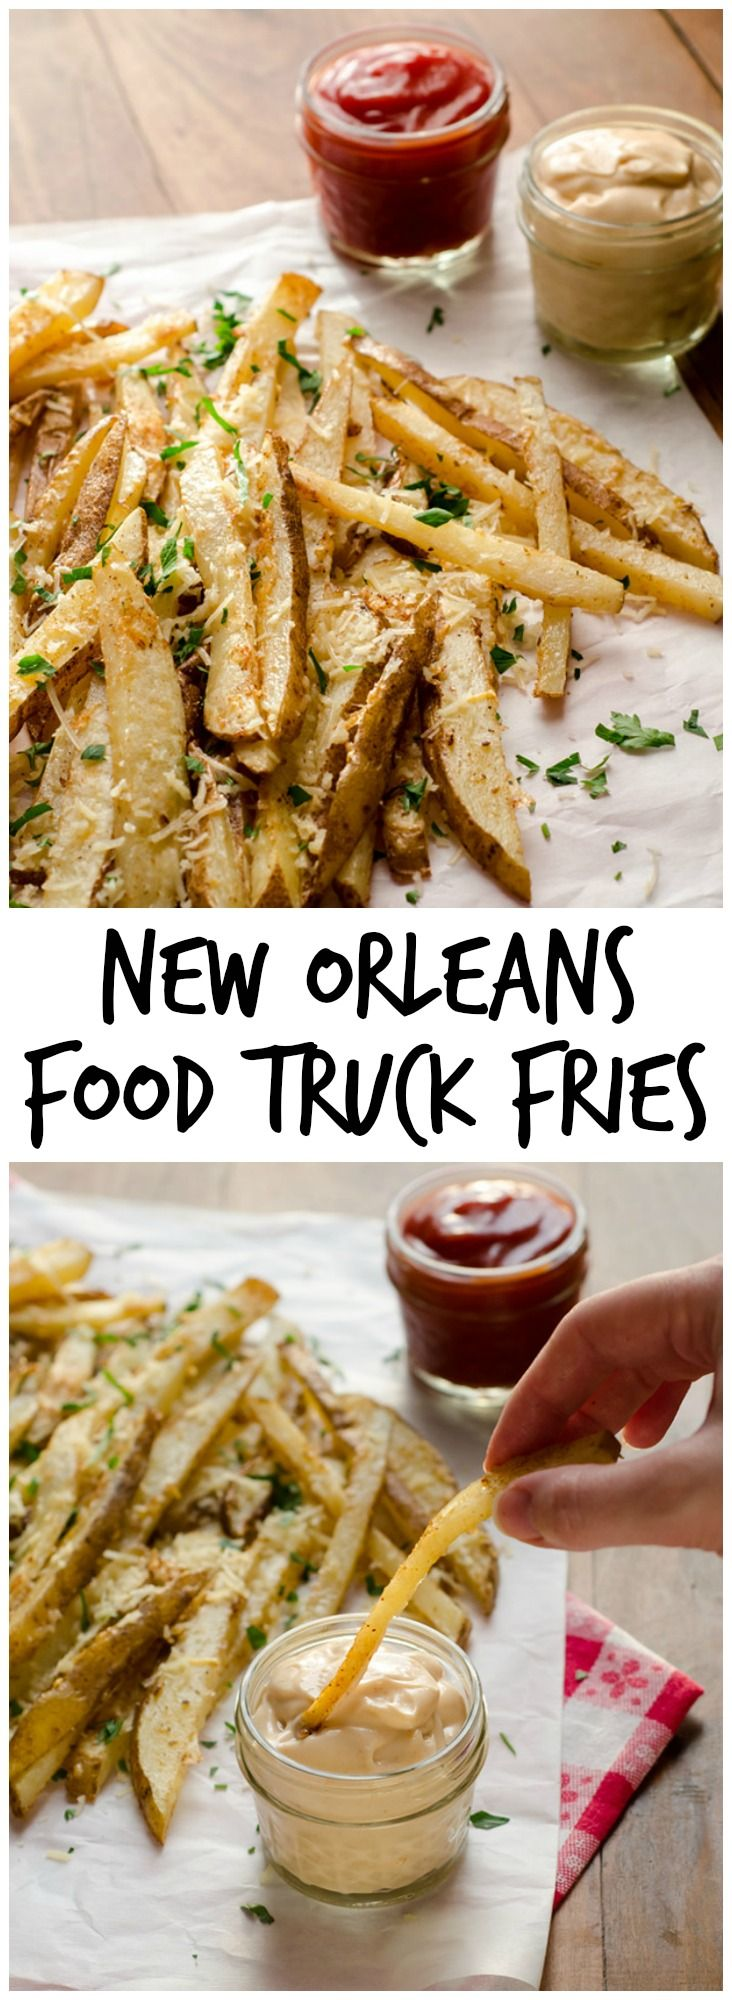 New orleans truck fries from laurafuentes momables original you dont have to go all the way down to new orleans to get those delicious fries make these new orleans food truck fries for a delicious indulgence forumfinder Gallery